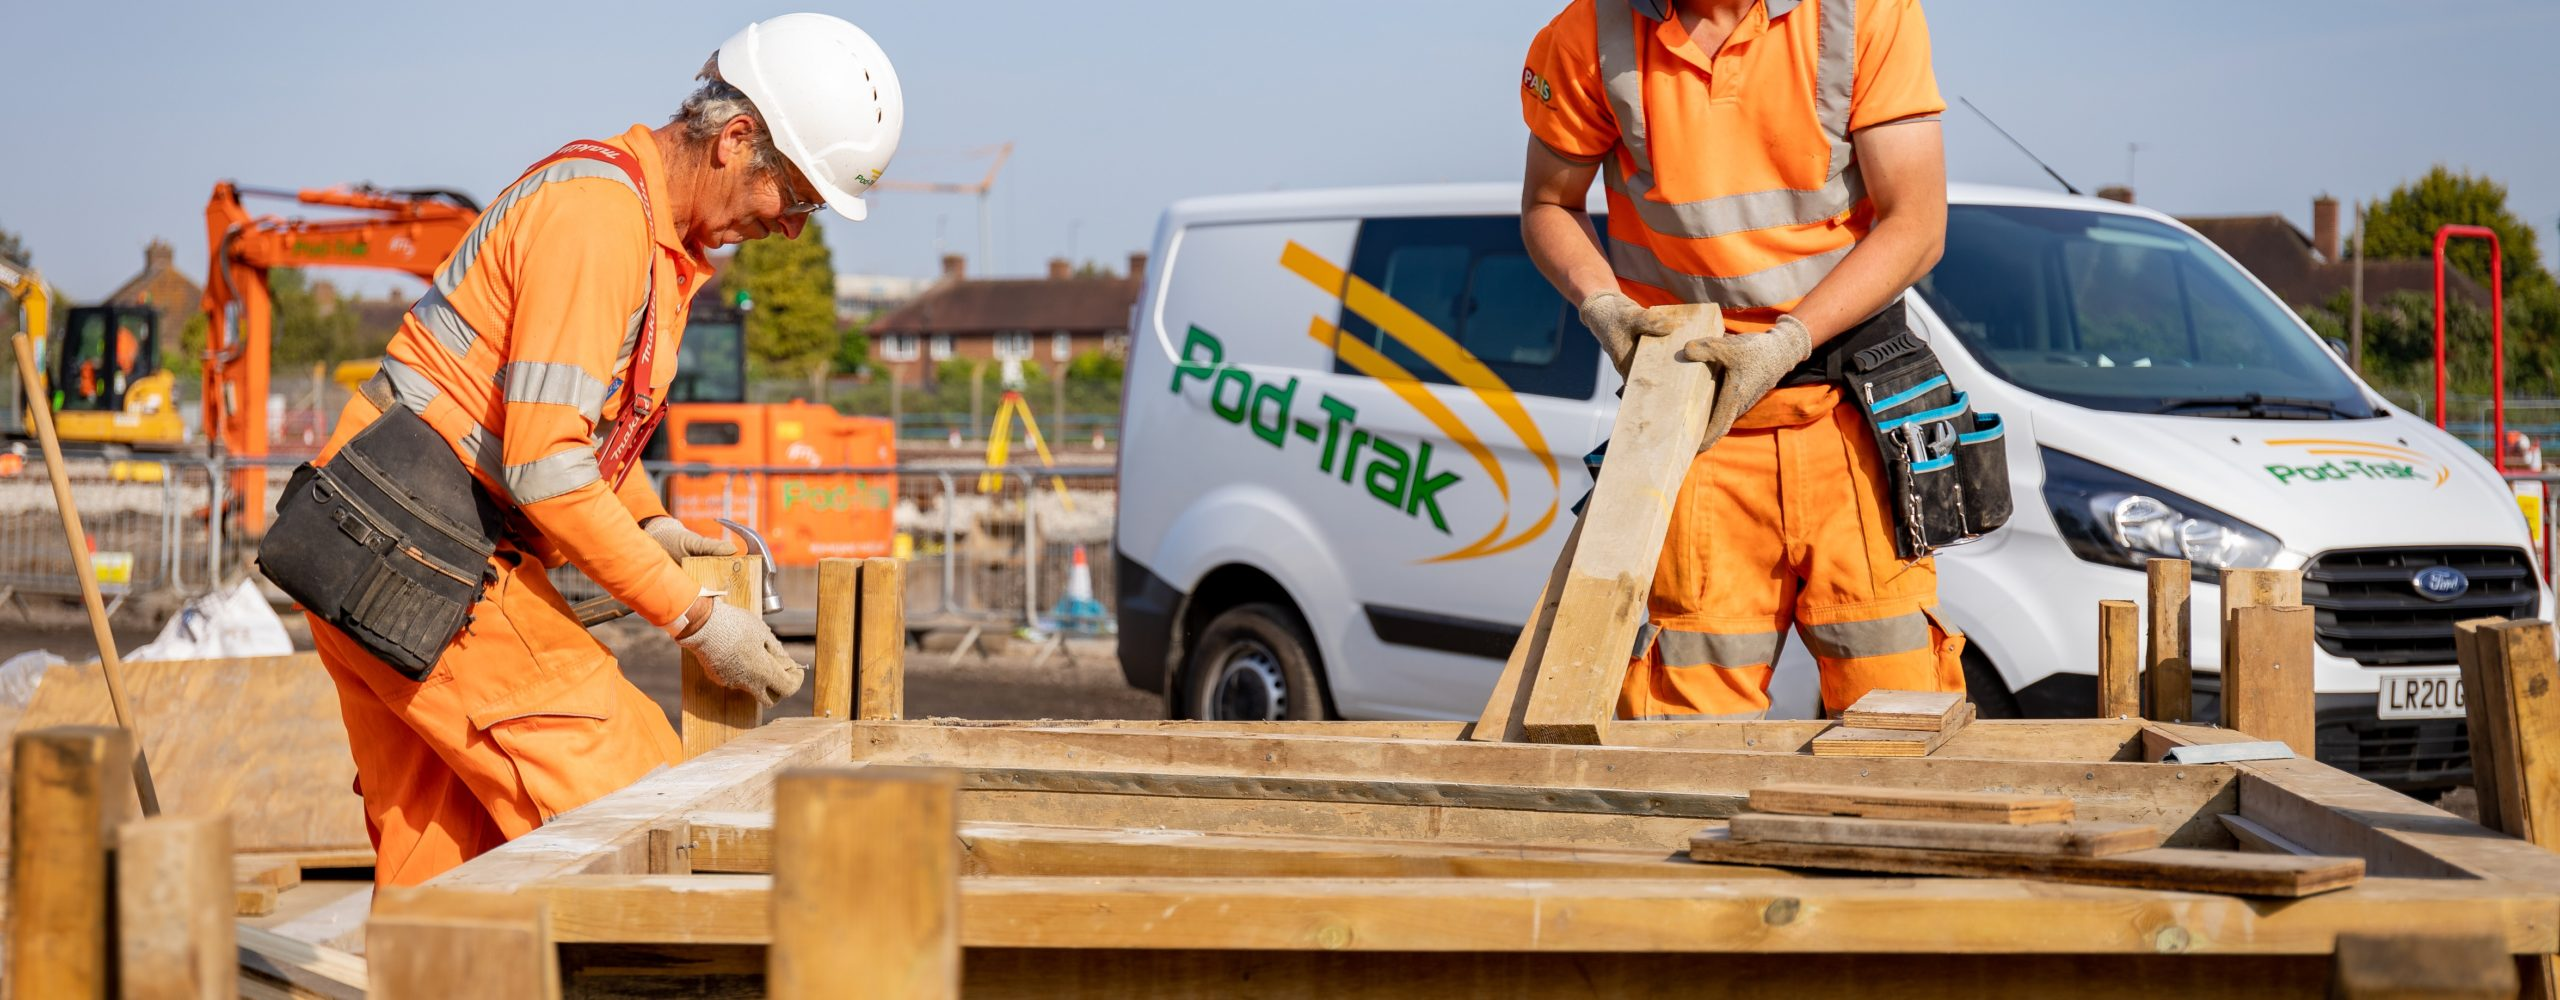 Pod-Trak team working at Feltham Depot - students and graduates